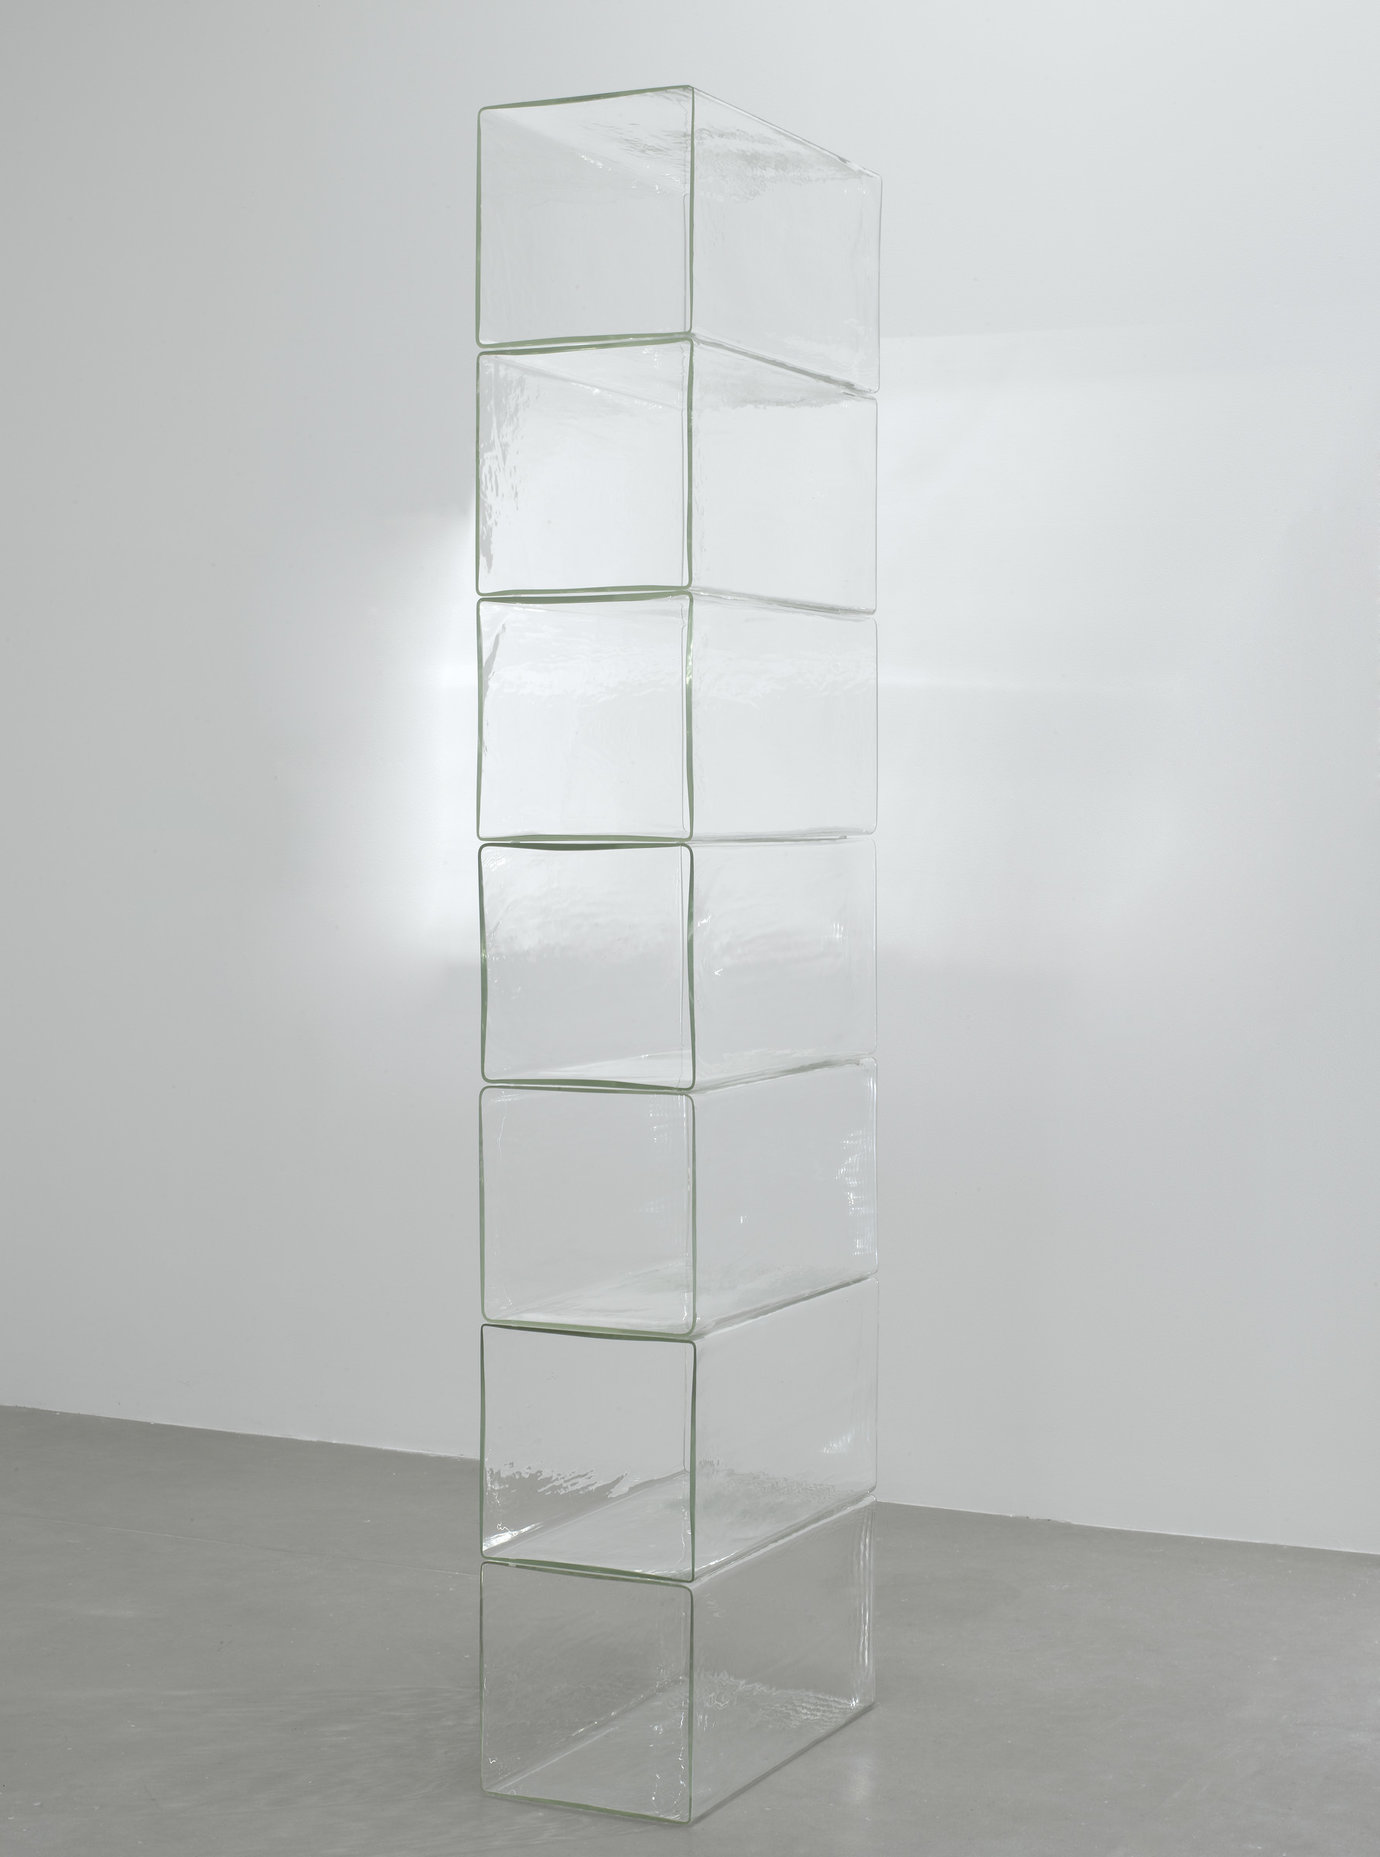 ", 2009. Borosilicate glass, 86-1/2"" x 12-1/4"" x 23-3/4"" (219.7 cm x 31.1 cm x 60.3 cm),&#x000A;7 borosilicate glass elements, stacked, overall."